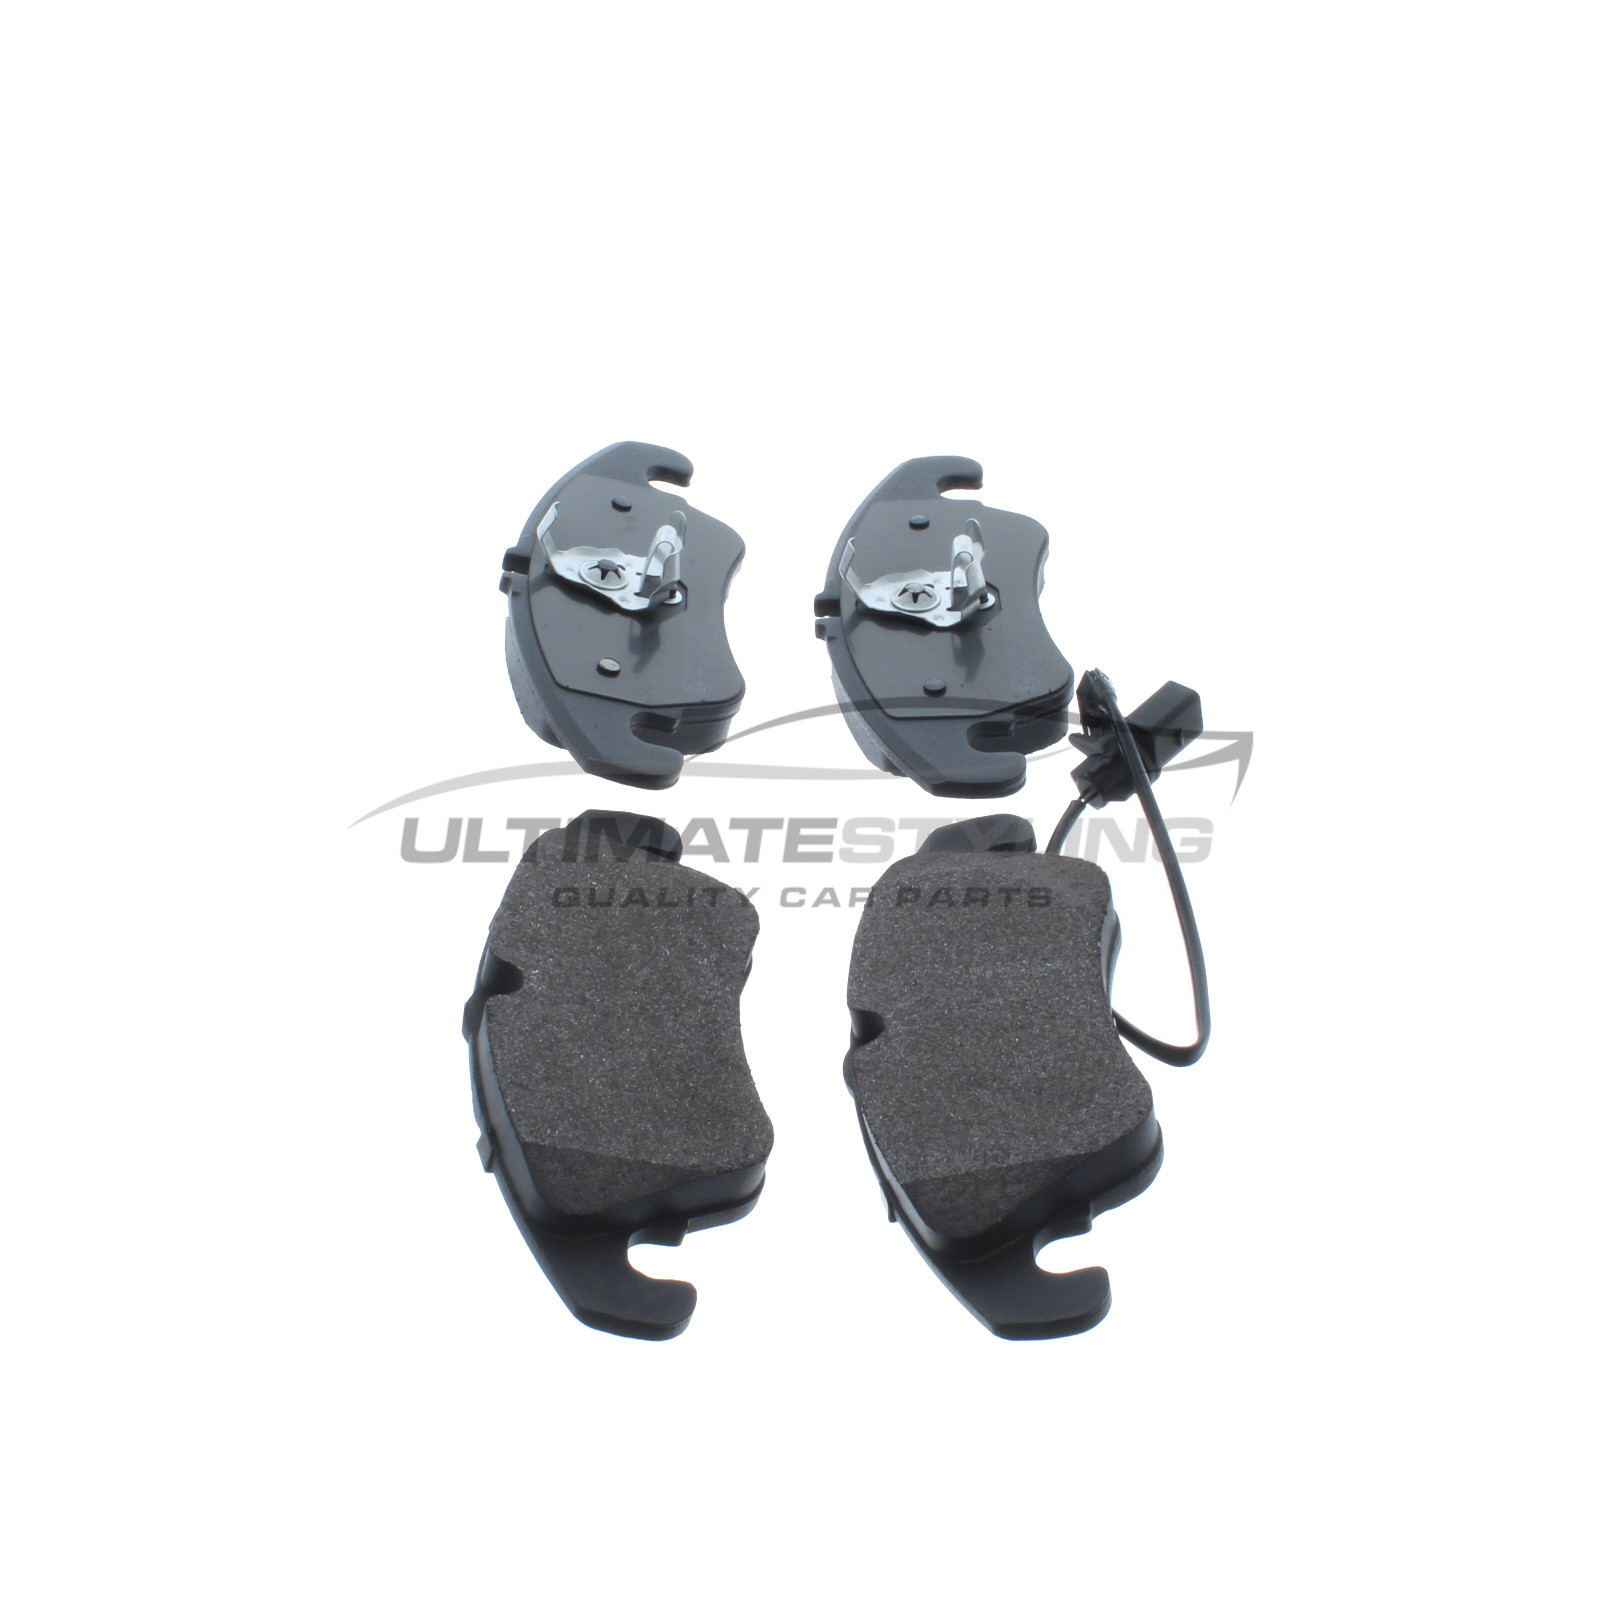 Audi A4 / A5 / Q5 / S4 / S5 Brake Pads - Front